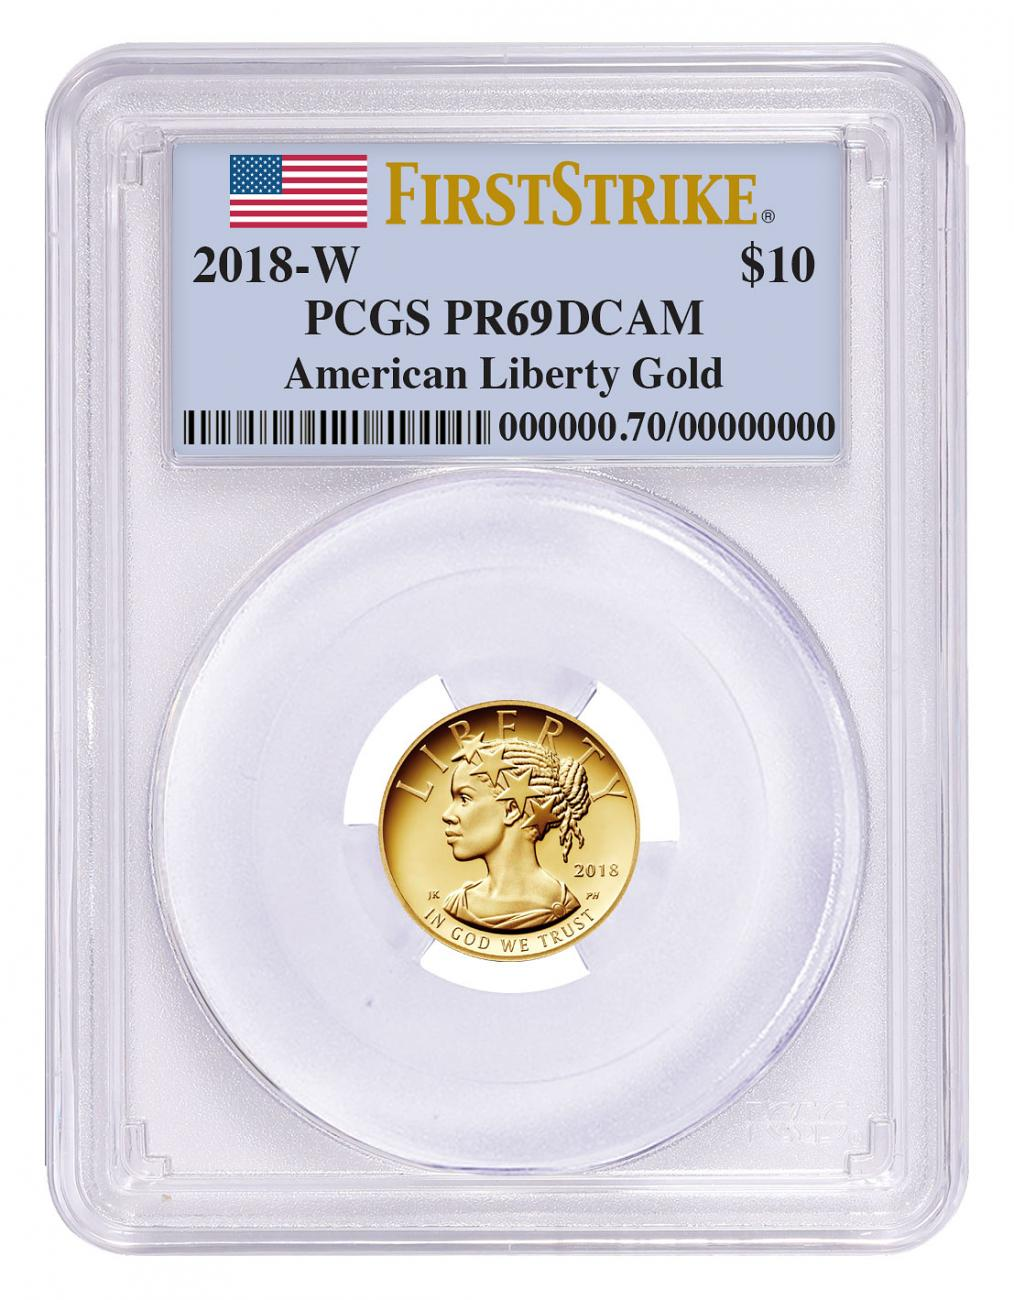 2018-W 1/10 oz Gold American Liberty Proof $10 PCGS PR69 DCAM FS Flag Label